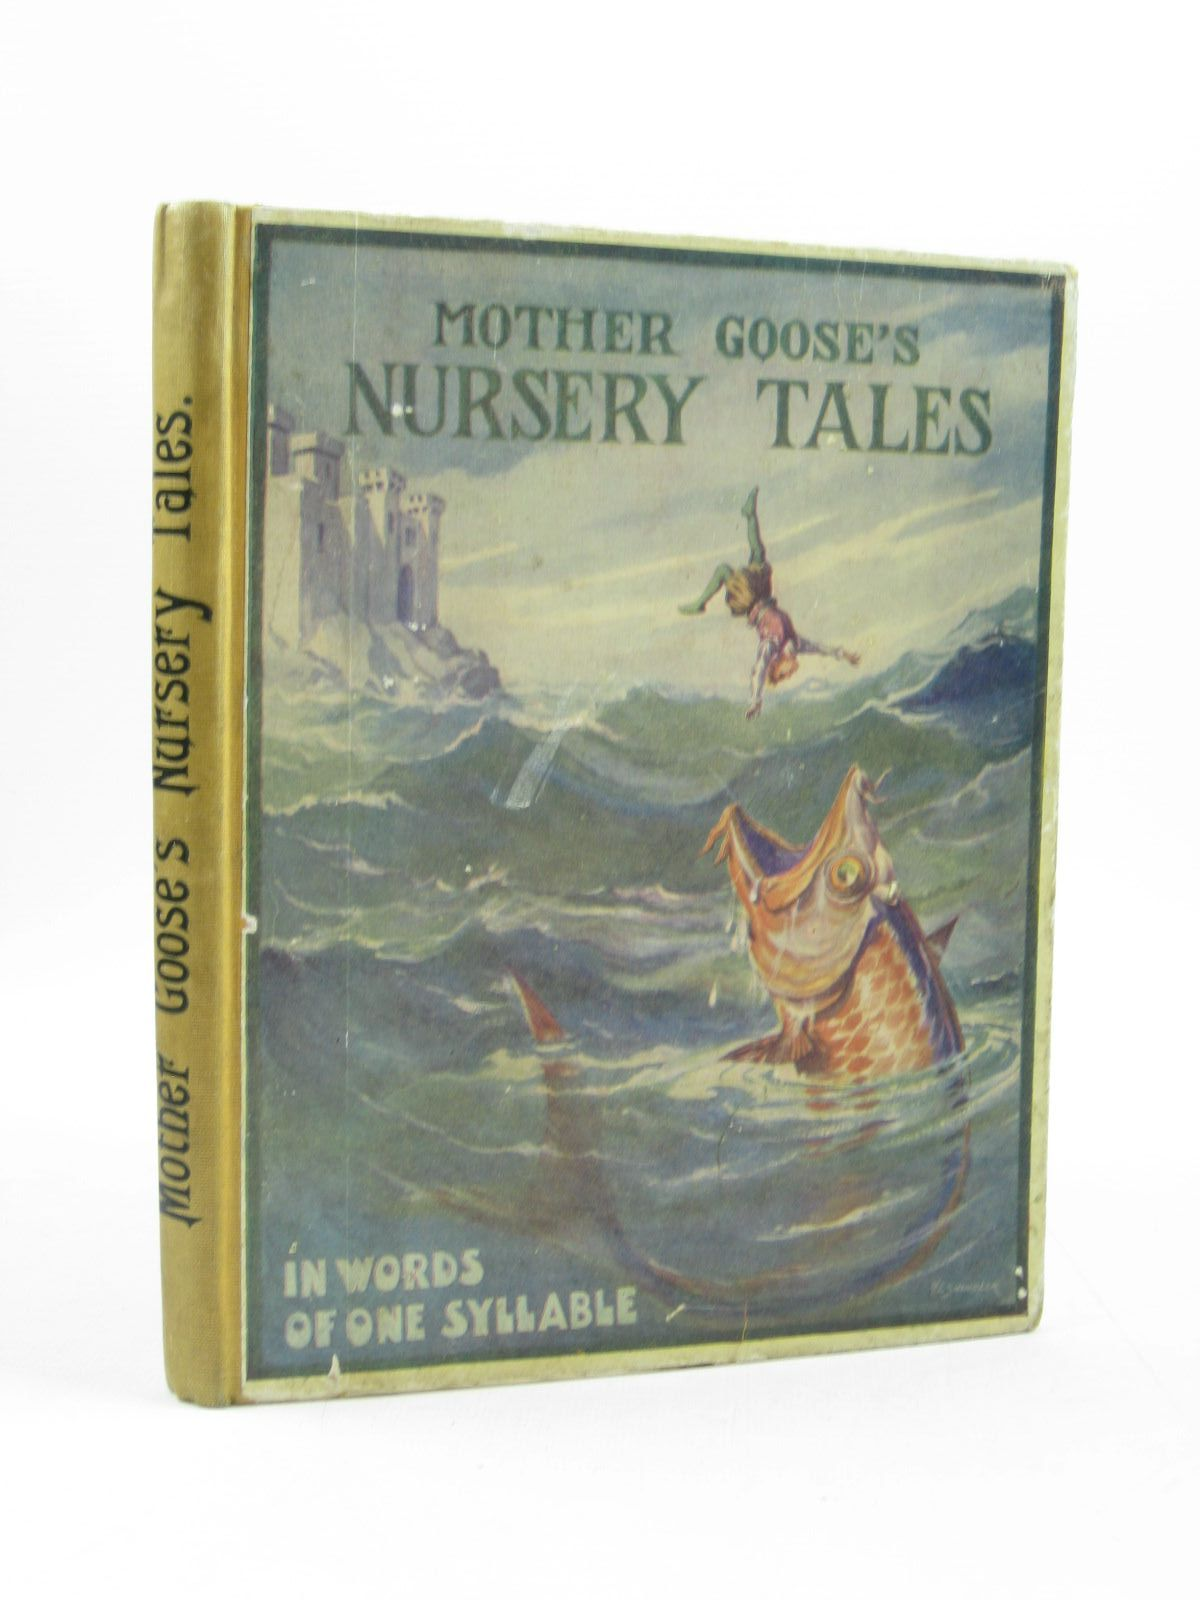 Photo of MOTHER GOOSE'S NURSERY TALES written by Pitt-Kethley, A. published by George Routledge & Sons Ltd. (STOCK CODE: 1503263)  for sale by Stella & Rose's Books